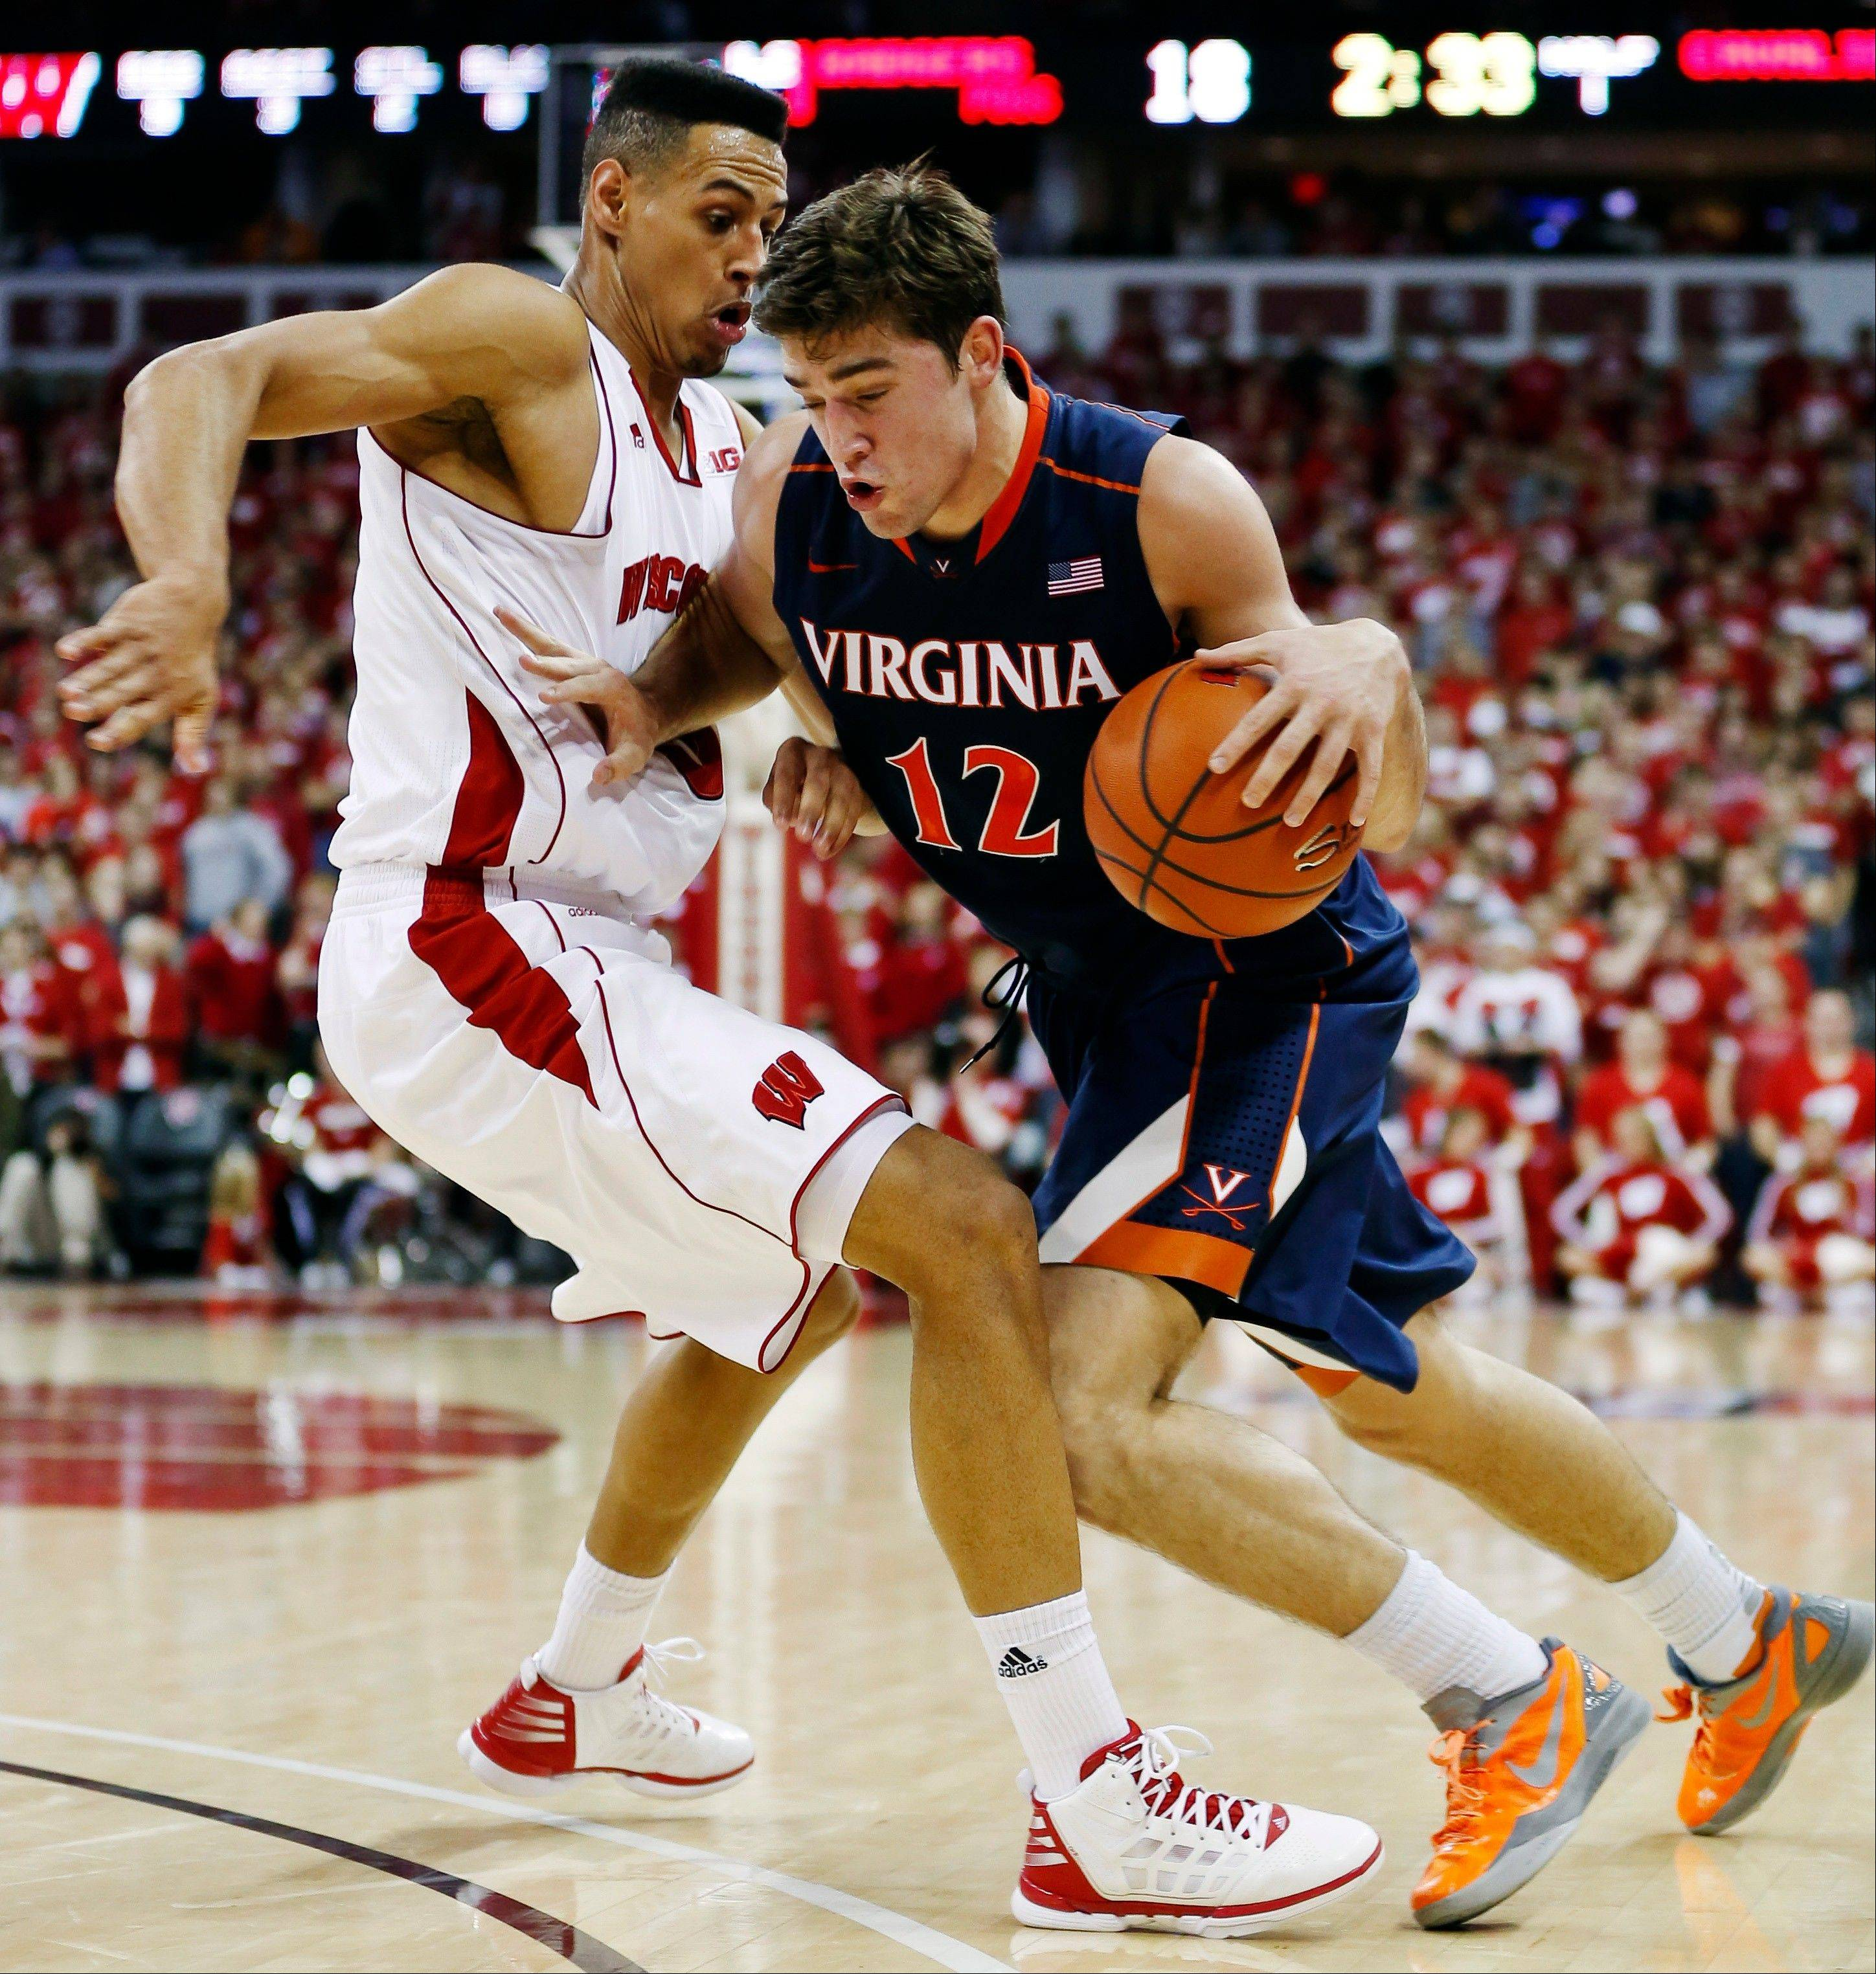 Virginia's Joe Harris drives on Wisconsin's Ryan Evans Wednesday during the first half in Madison, Wis.